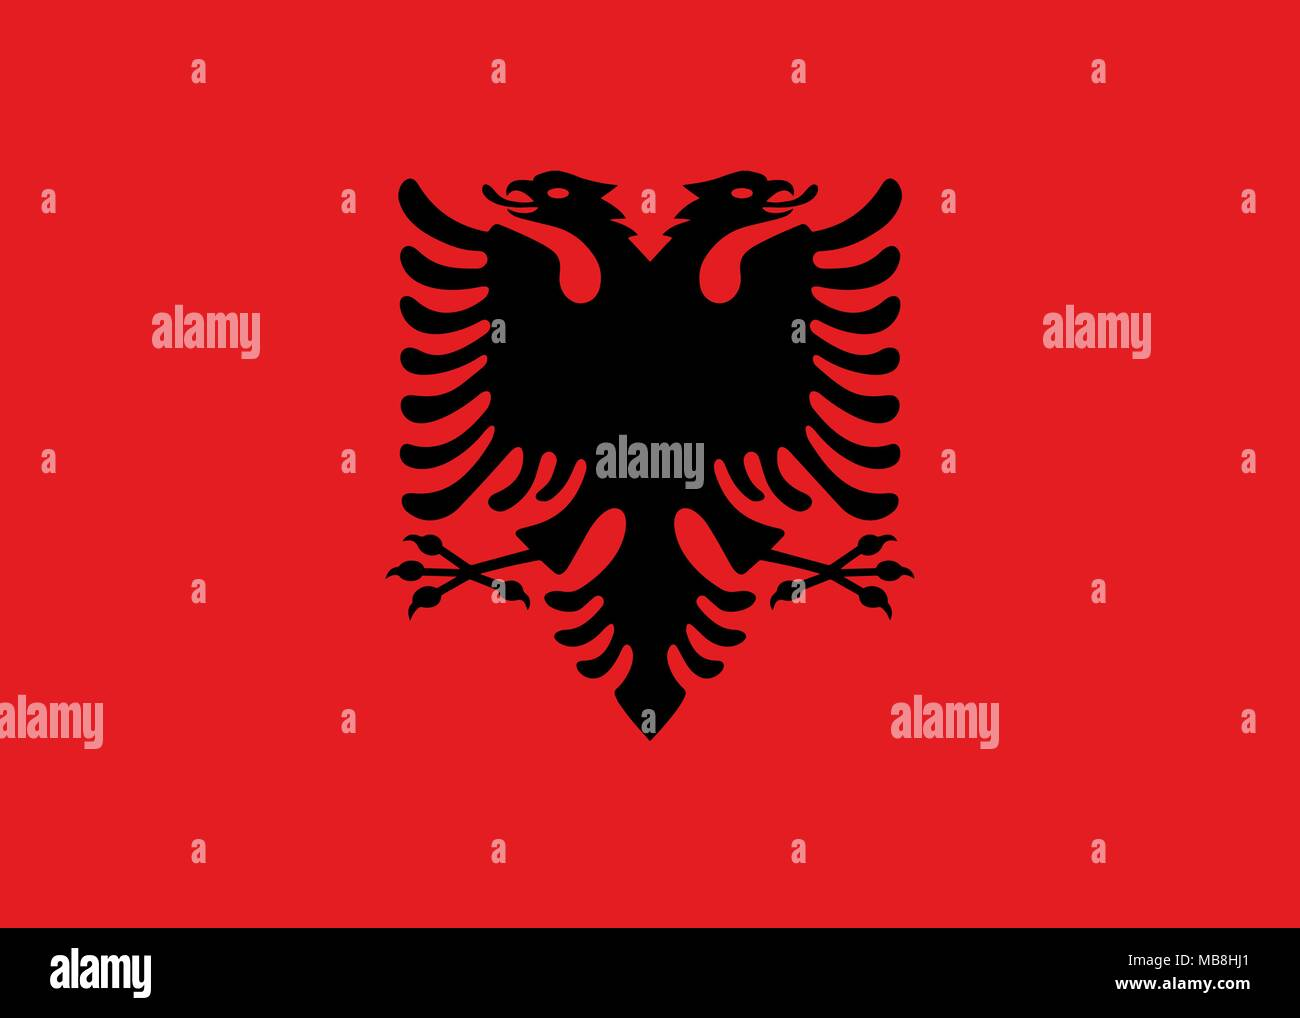 Flag of Albania official colors and proportions, vector image - Stock Vector